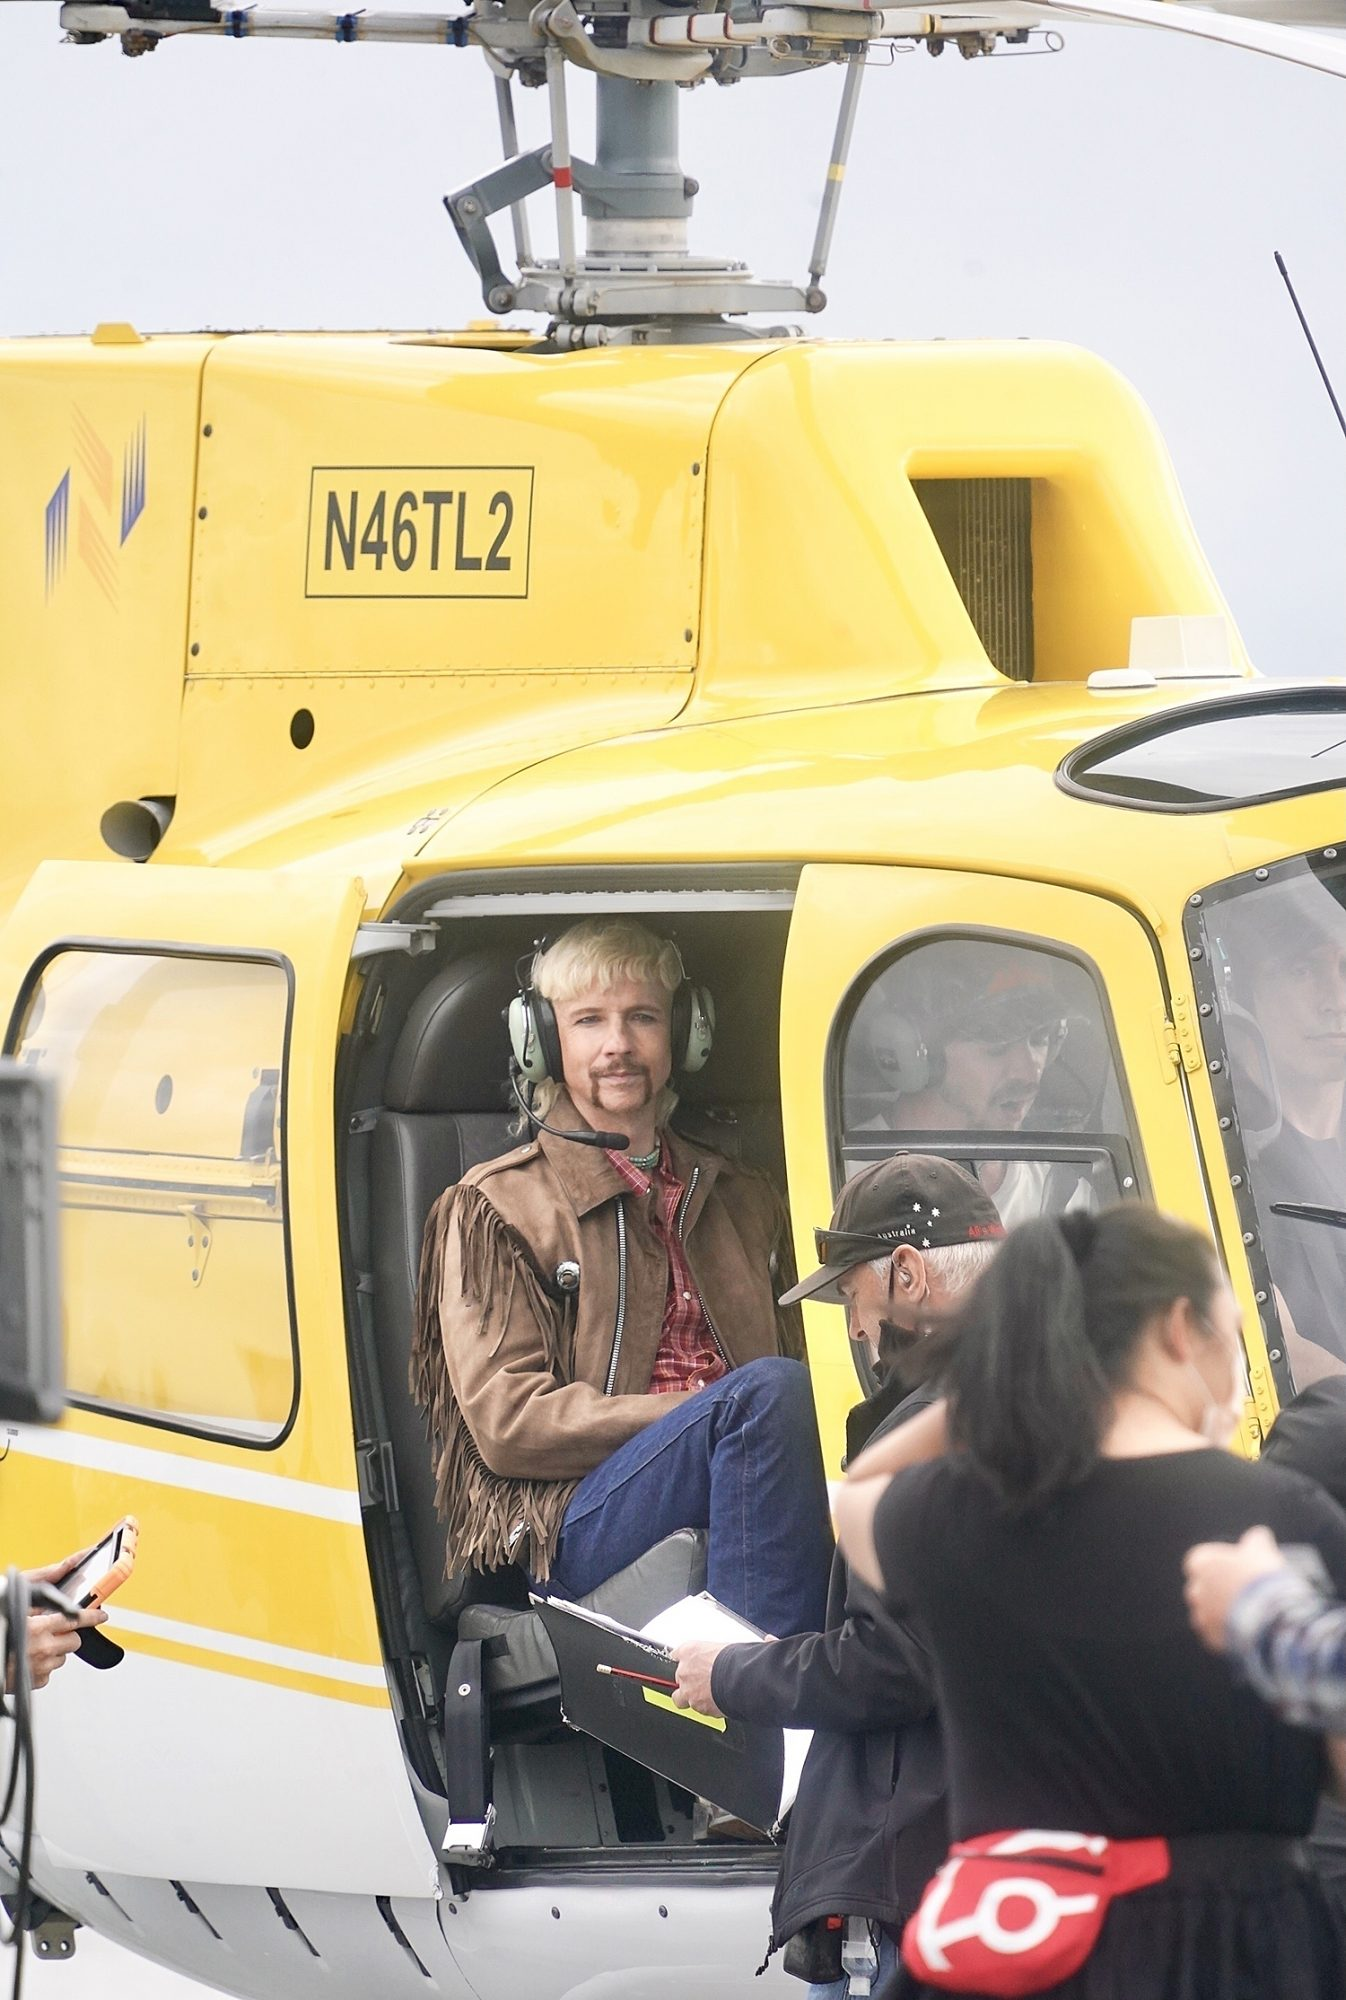 John Cameron Mitchell films a helicopter scene for Joe Exotic Tv Series